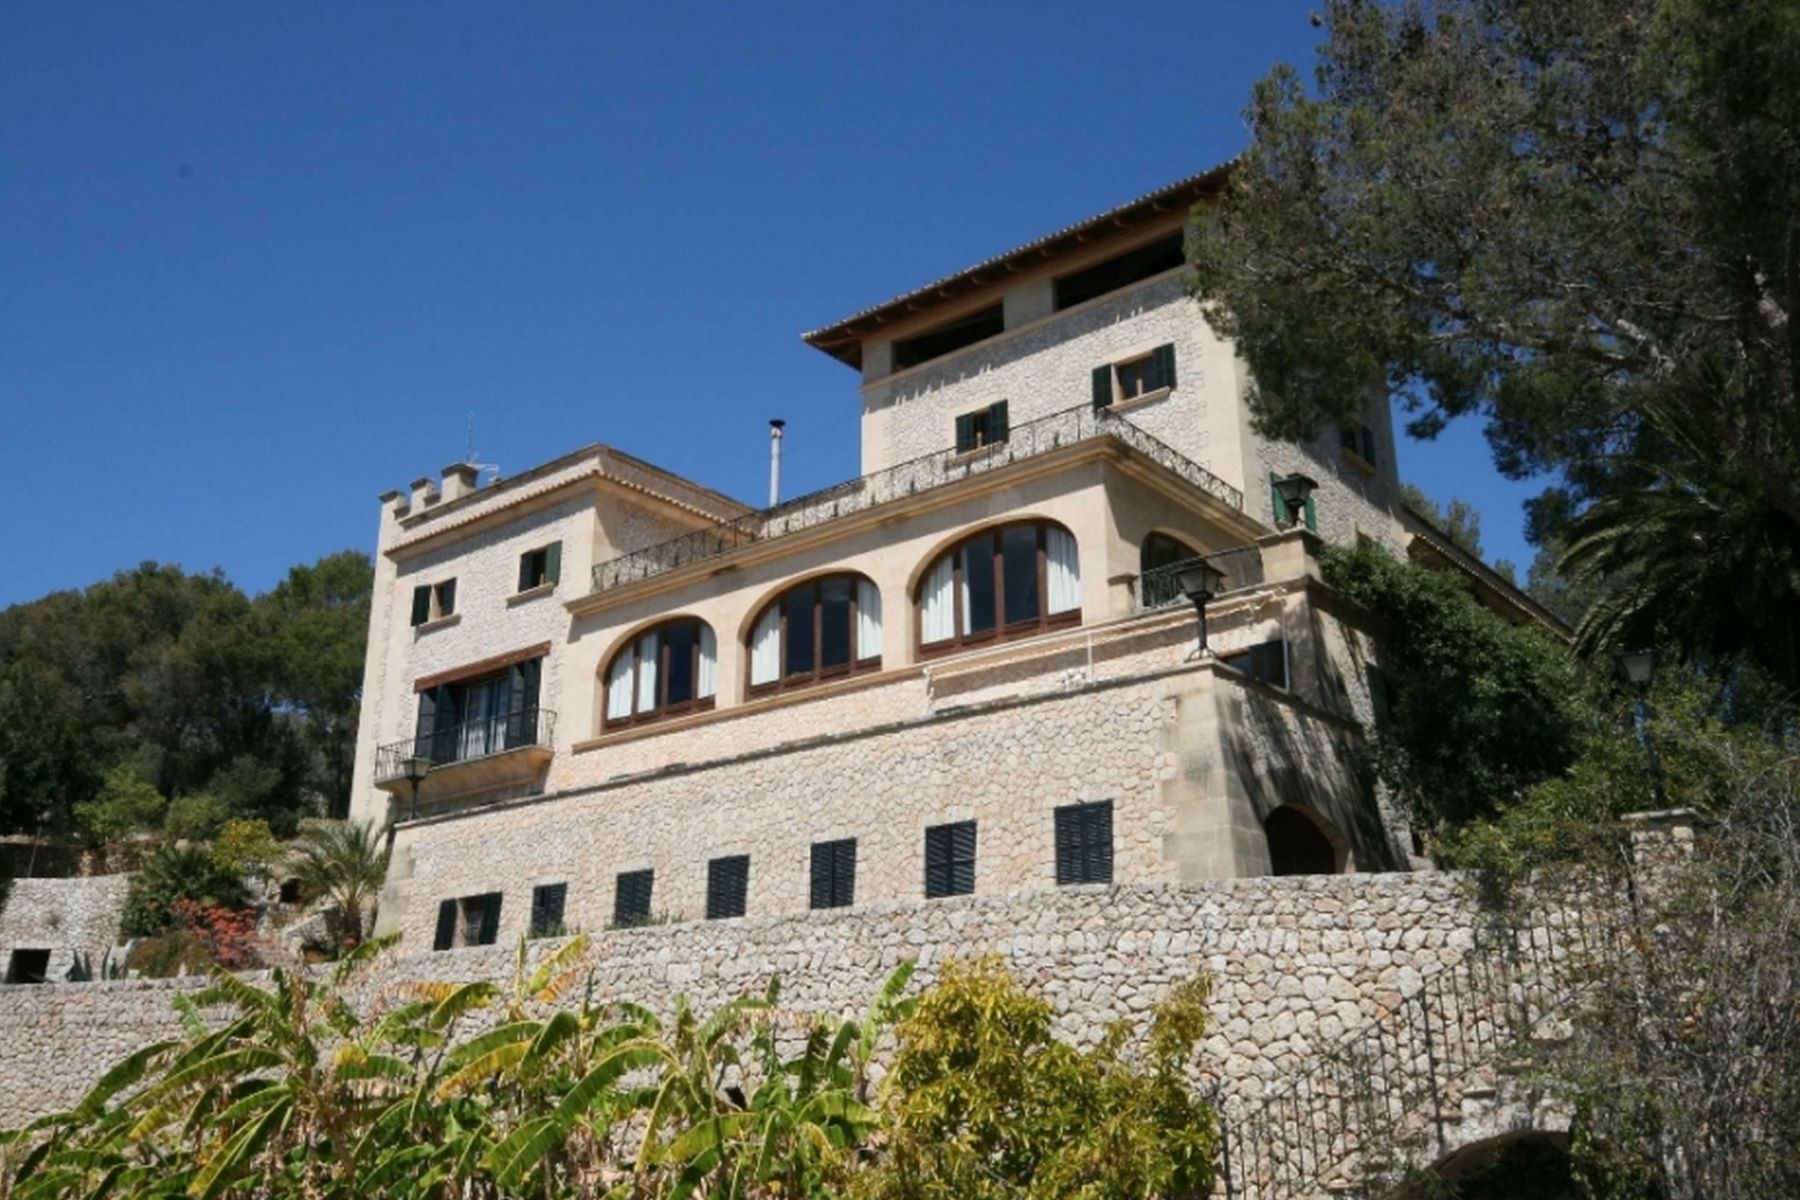 Single Family Home for Active at Manor house for with views of the bay of Palma de Mallorca Palma De Mallorca, Balearic Islands Spain